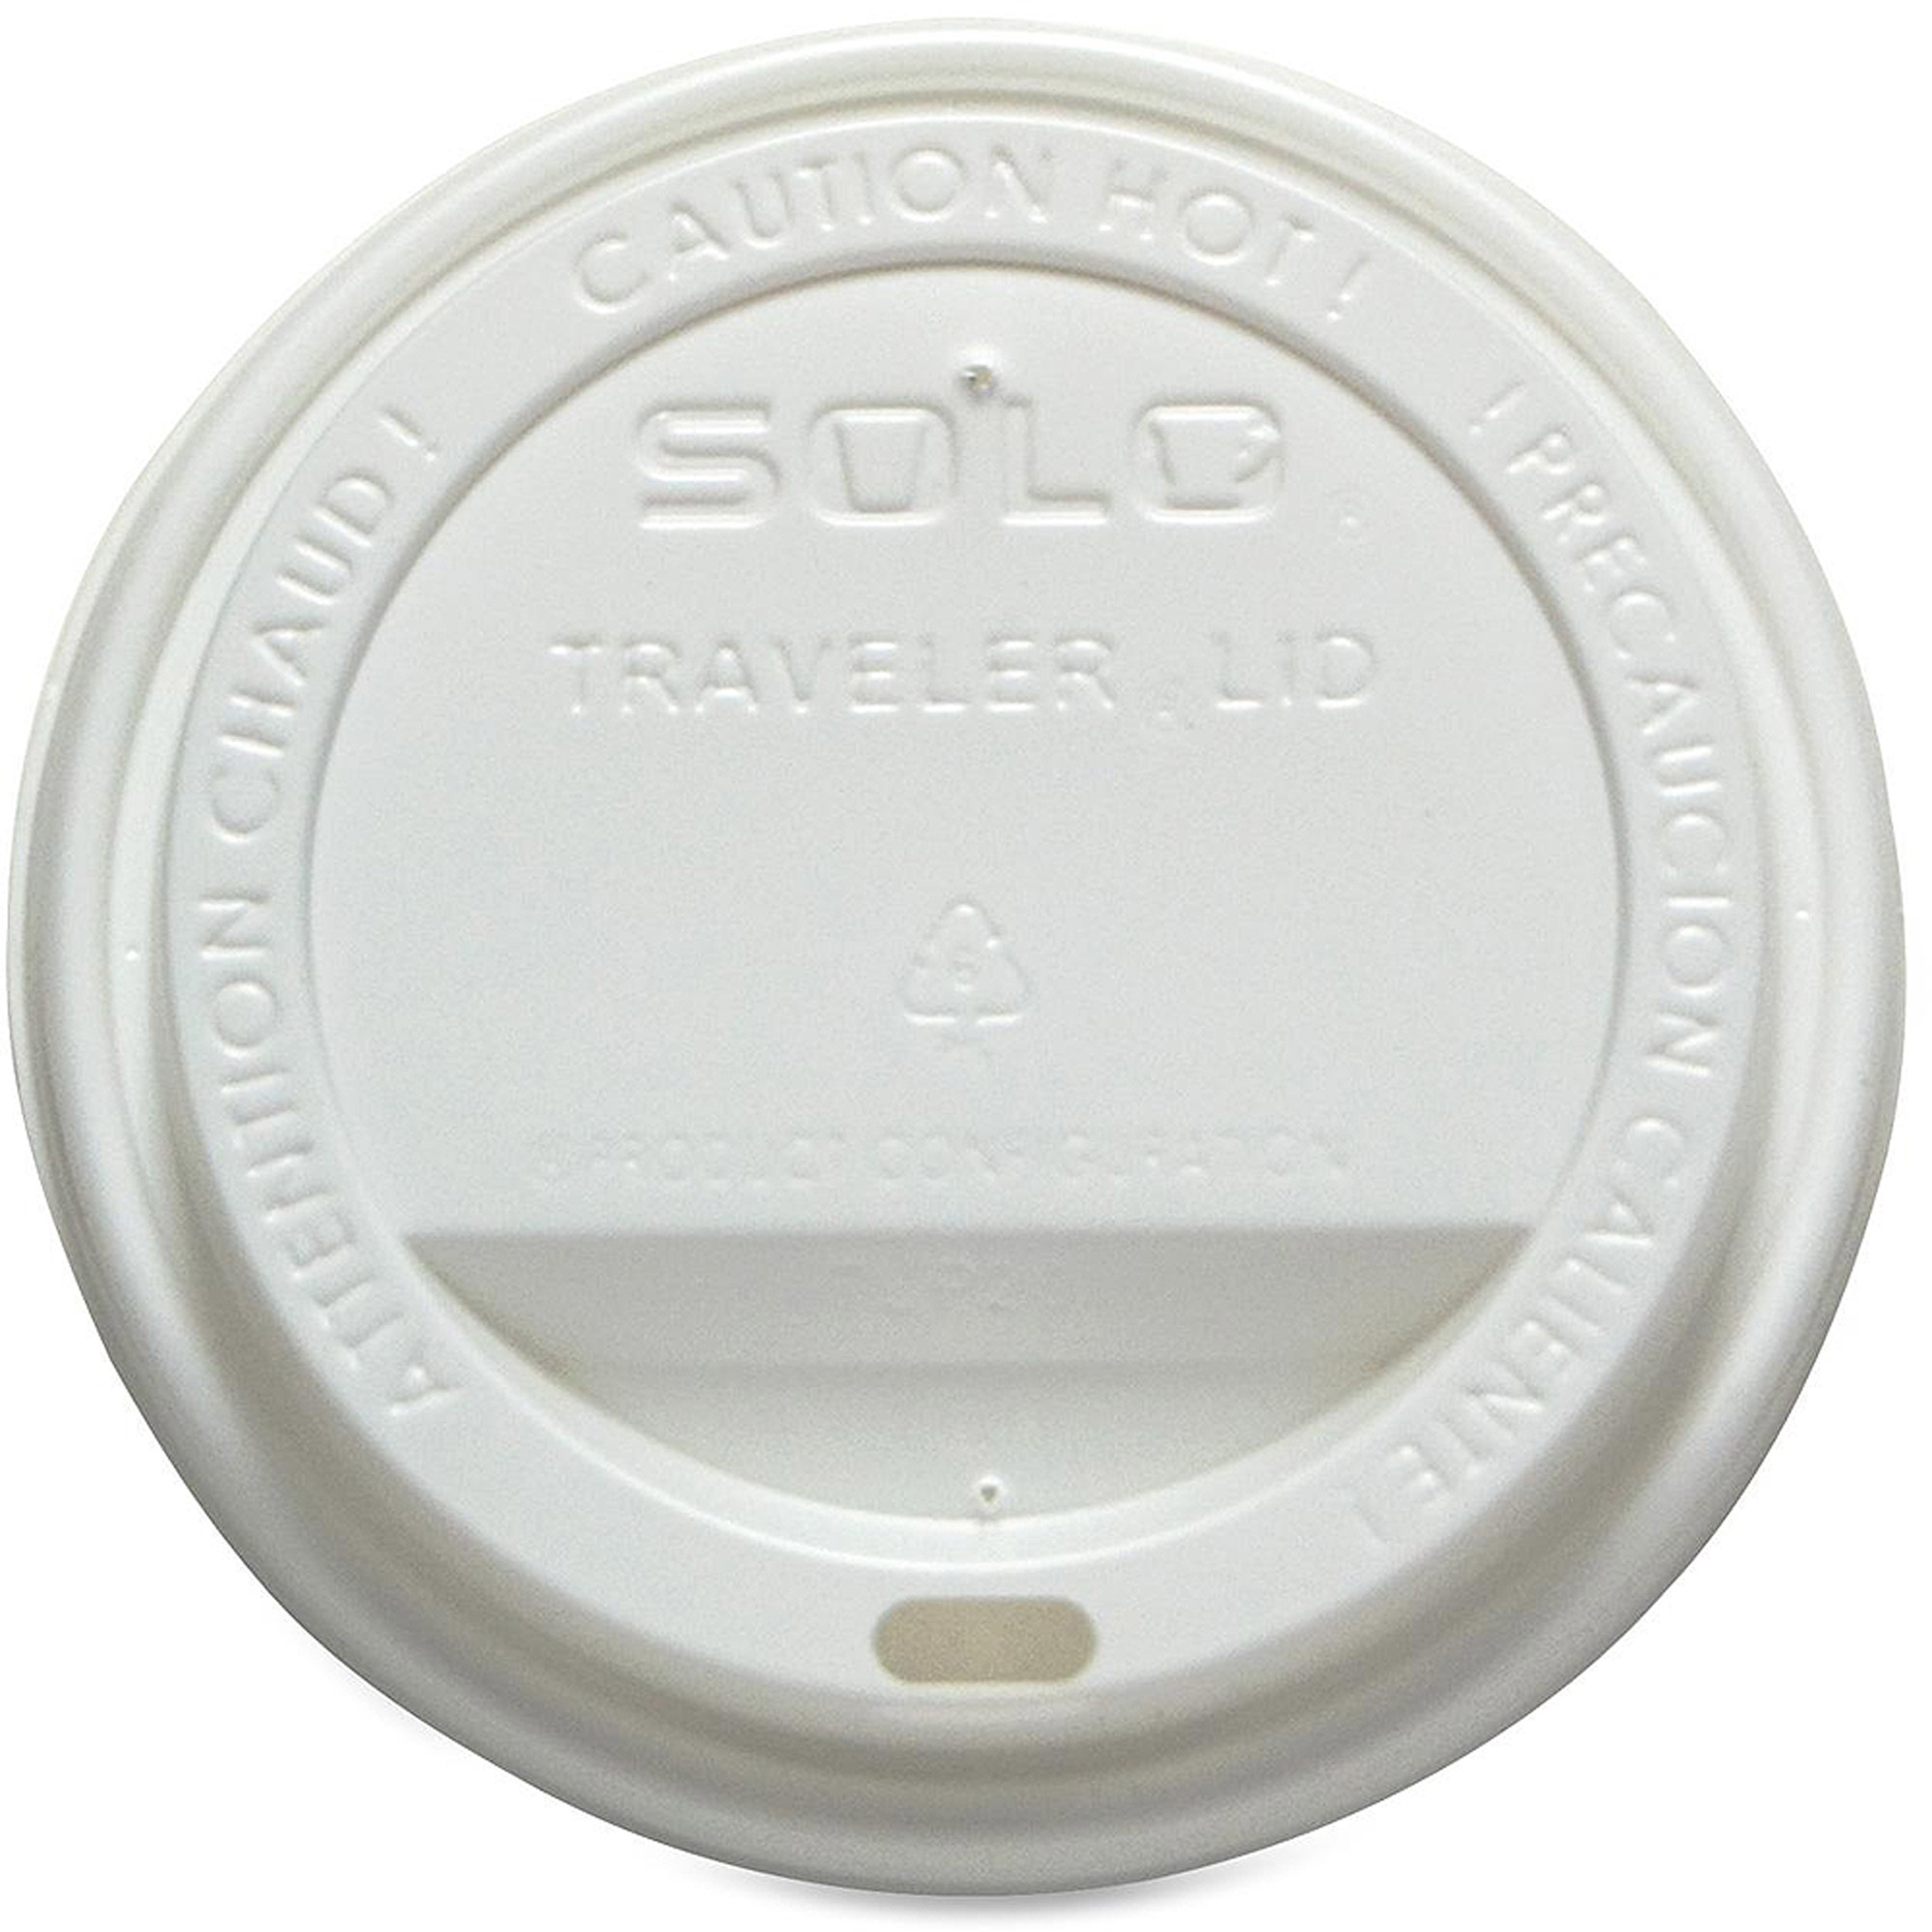 Solo Traveler Dome Hot Cup Lids, 300 count